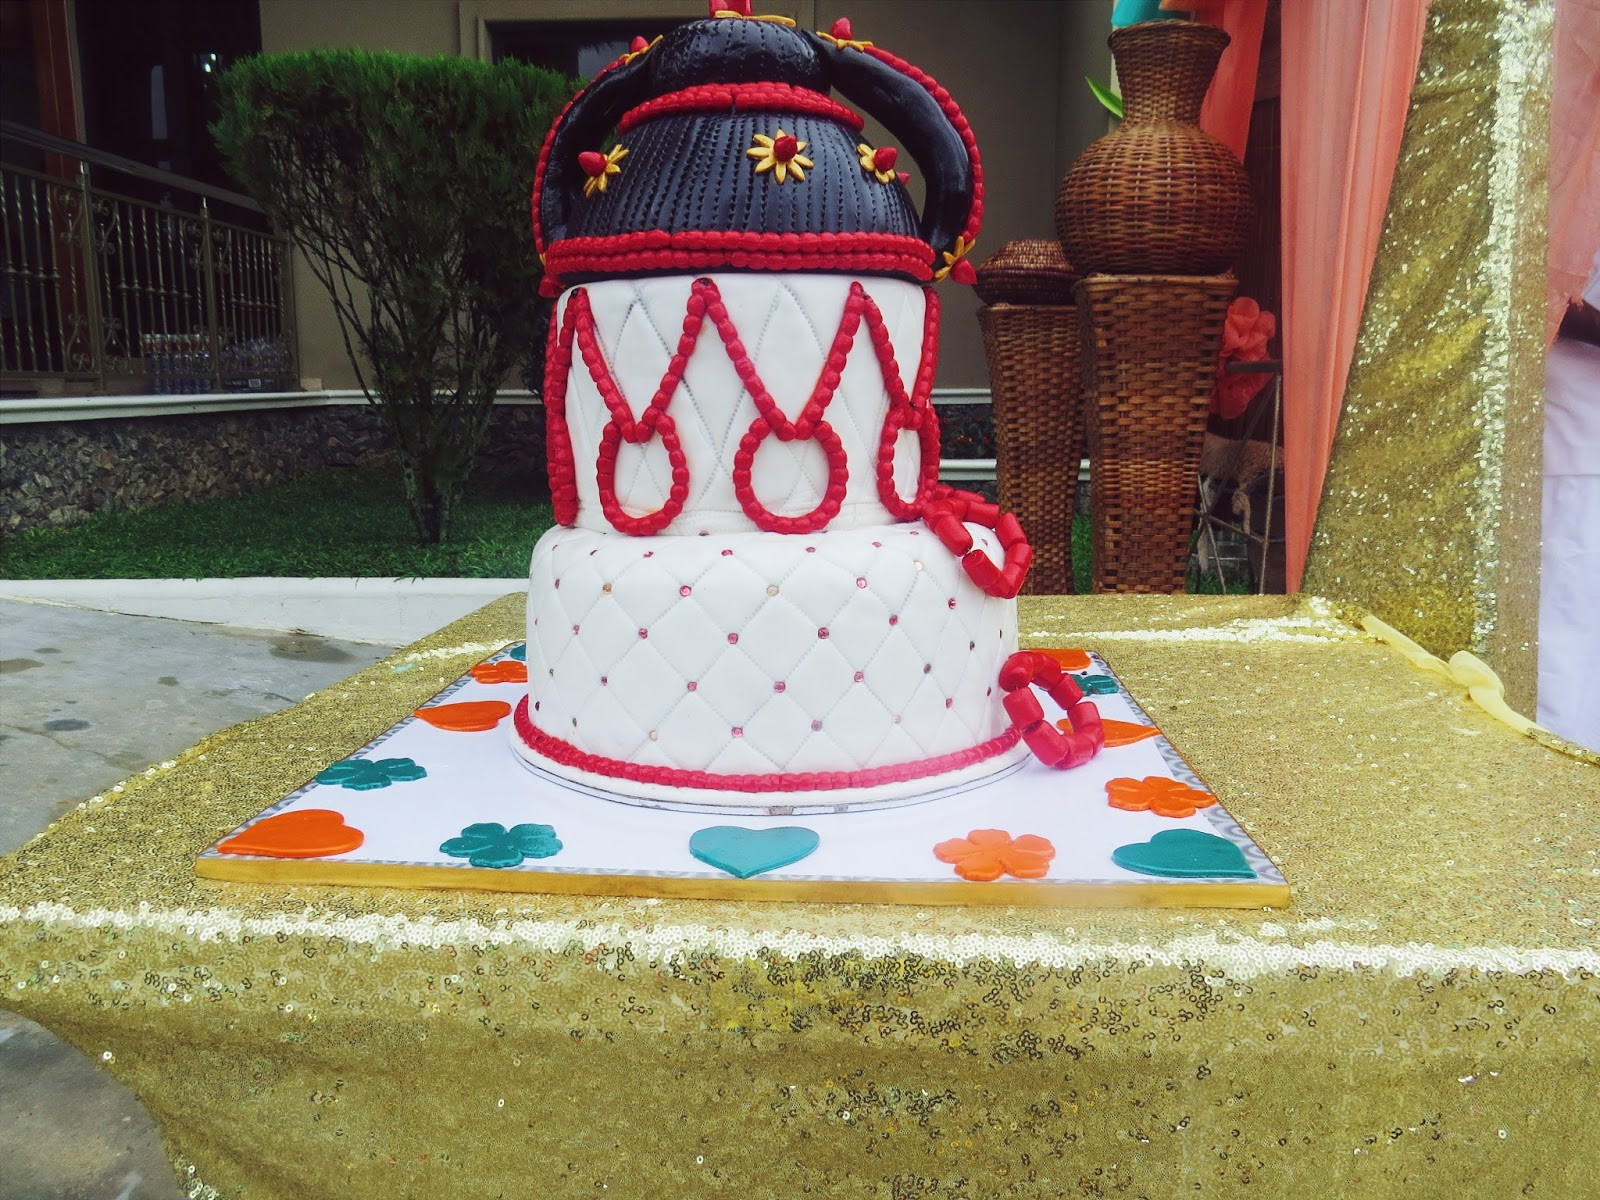 Cake design for Bini traditional wedding ceremony